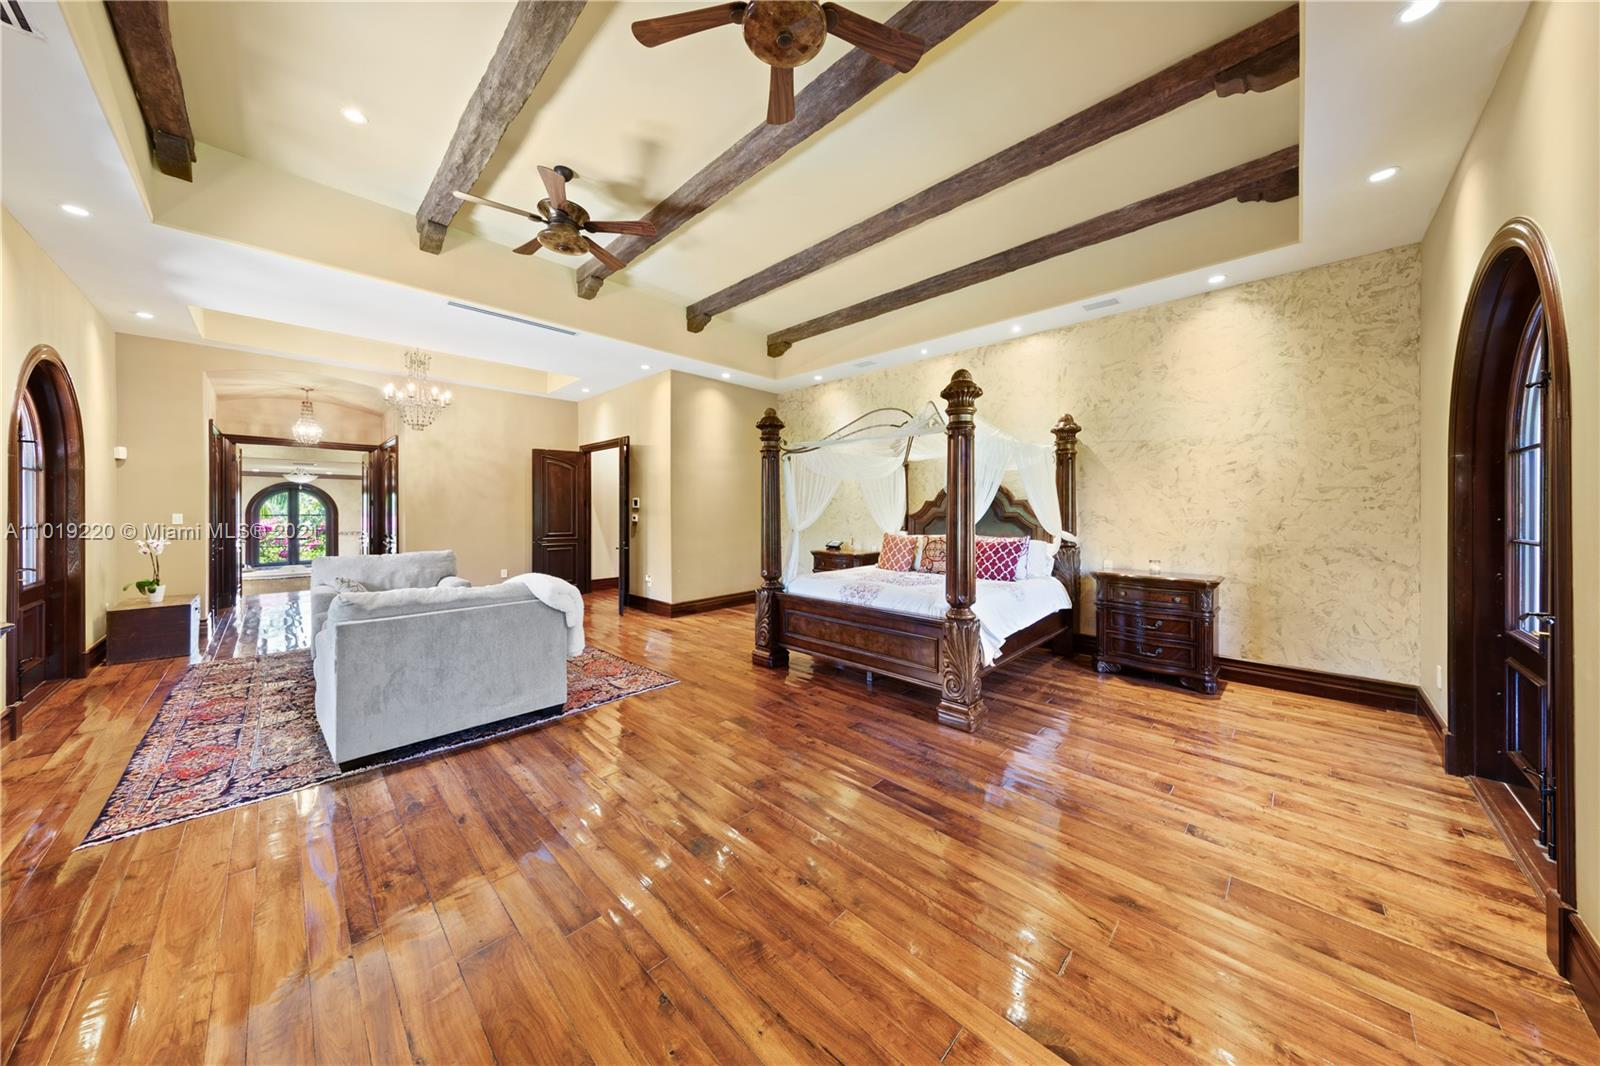 ANOTHER VIEW OF MASTER.. THE  FLOORING IS RECLAIMED WALNUT OLD WORLD PLANK STYLE.. VENETIAN PLASTER WALLS WITH BEAM DETAIL CEILING. THE FAR DOOR OPENS TO EXTERIOR STAIRWELL THE OTHER TO A FICUS REPENS LINED TERRACE OVERLOOKING THE WATERFALLS AND COCONUT PLANTATION